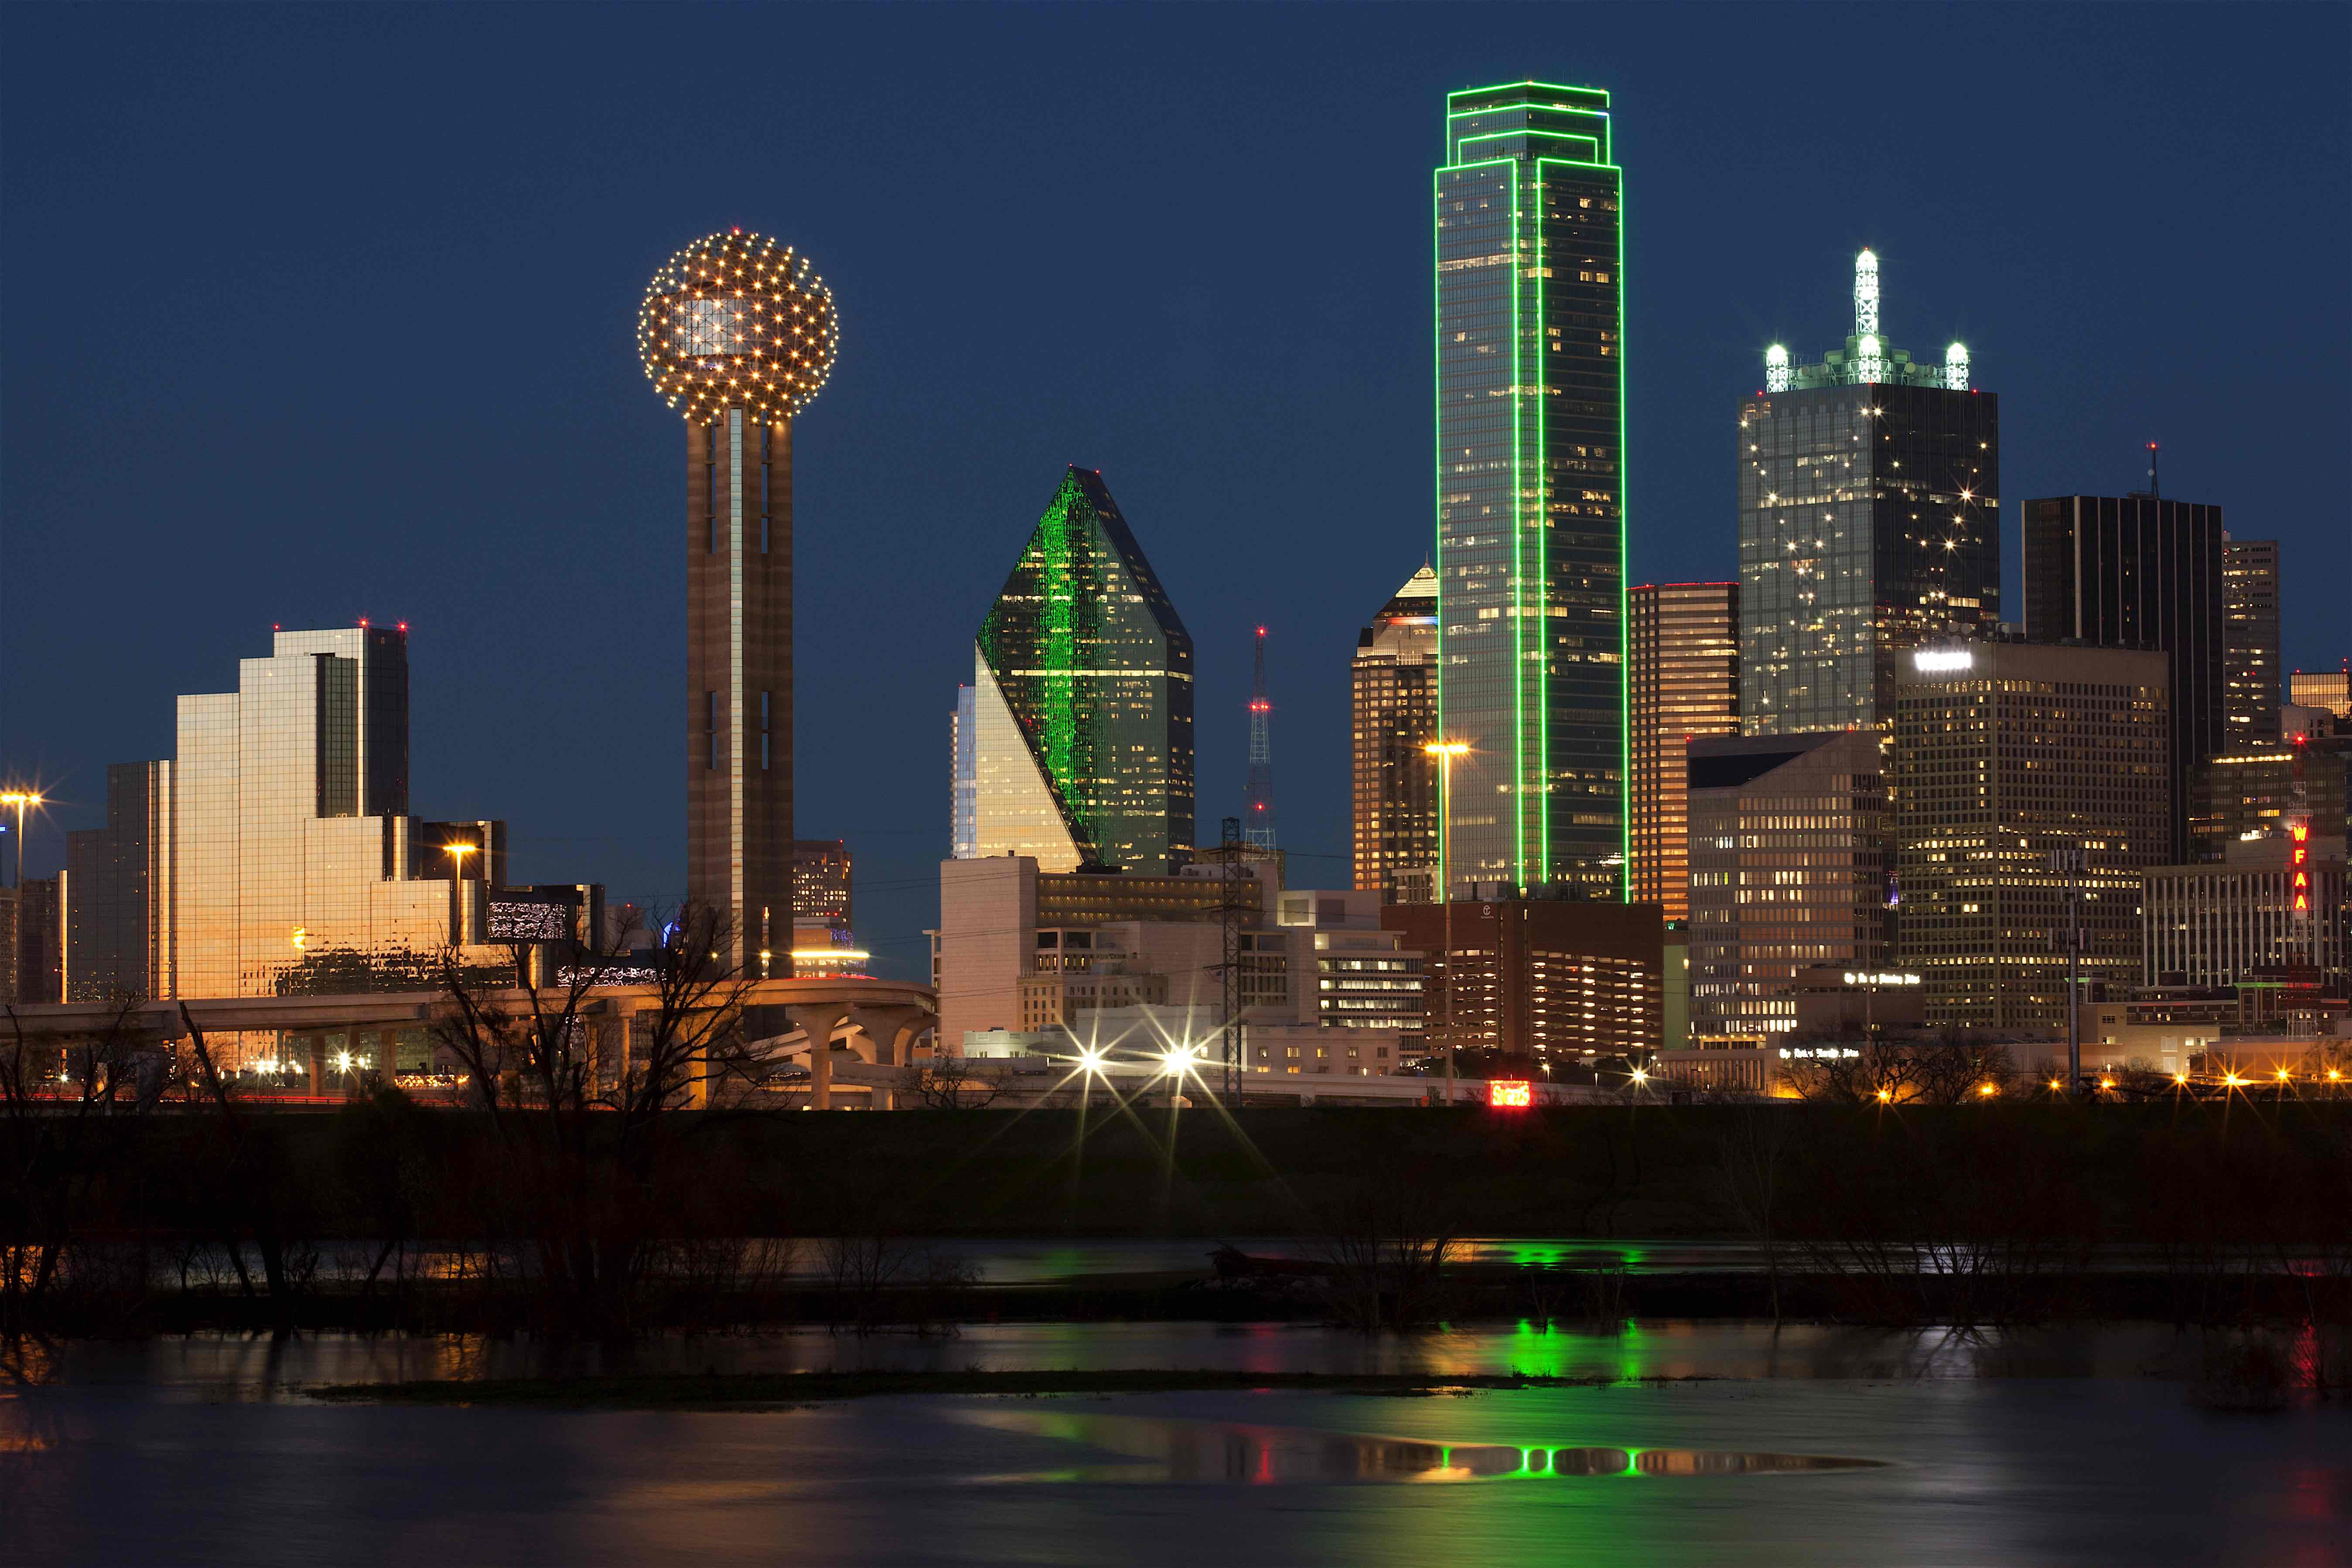 9.) Dallas, TX